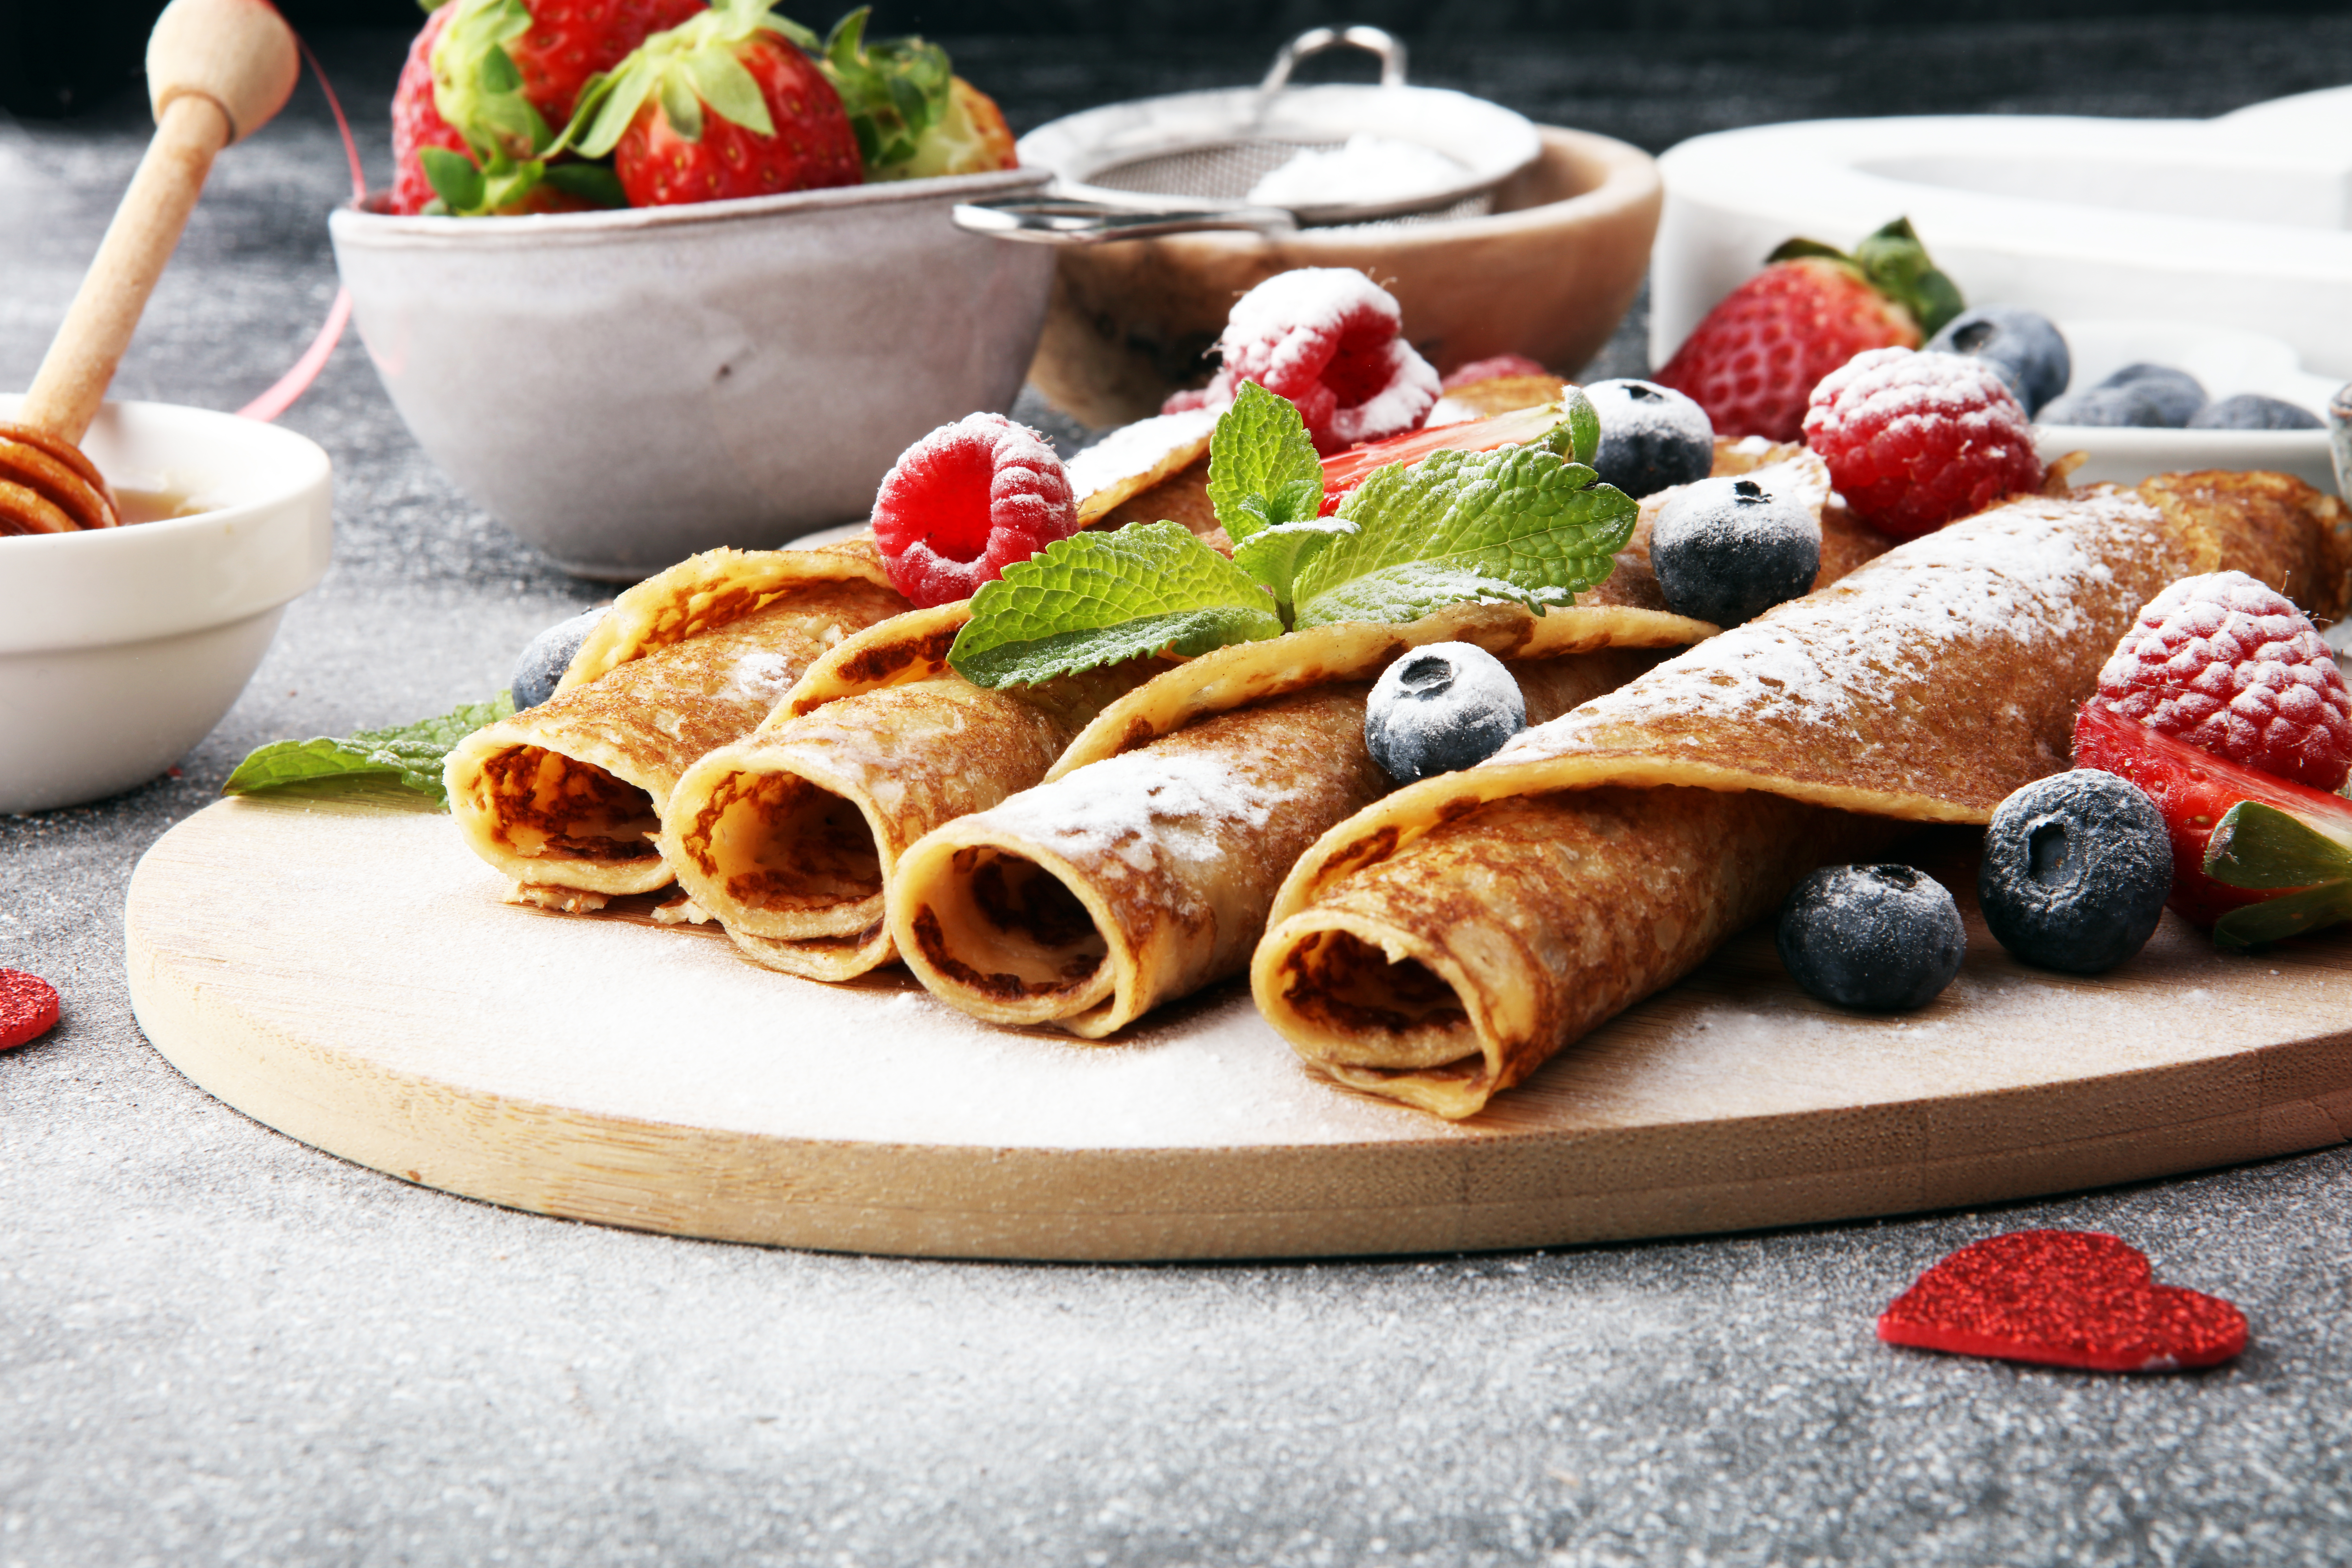 Pictured are crepes. SHUTTERSTOCK/ beats1